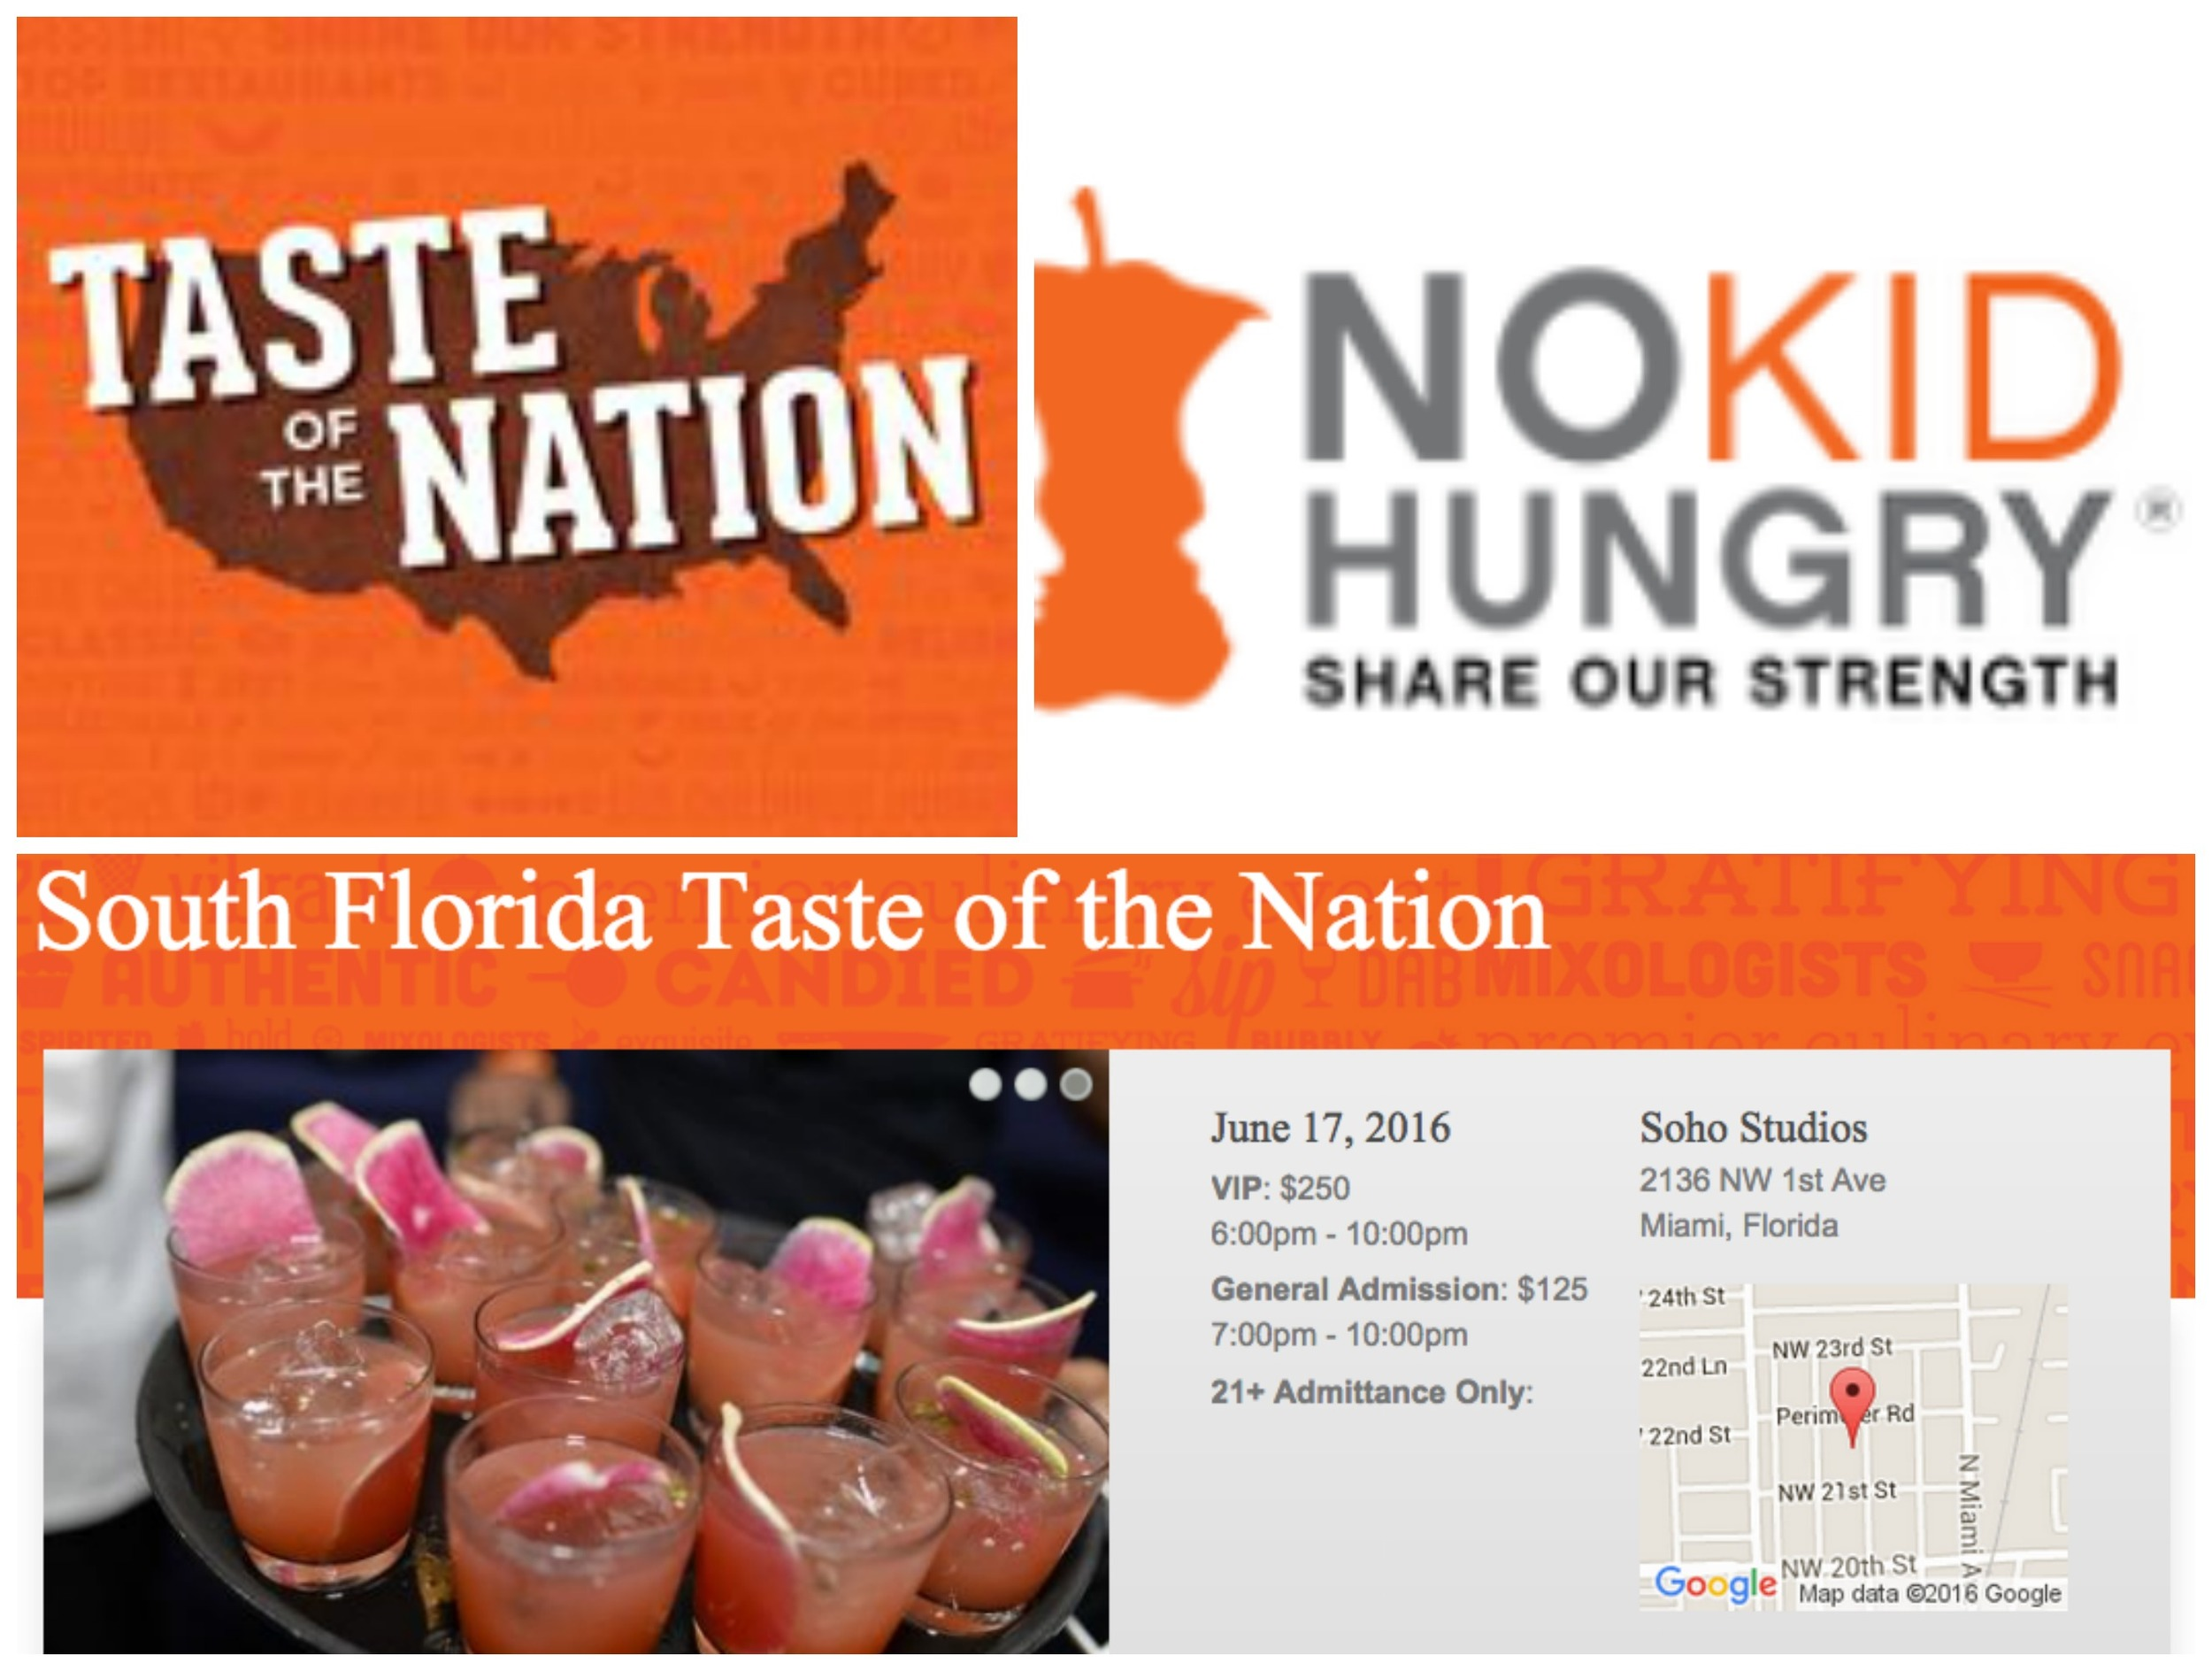 Taste of The Nation No Kid Hungry South Florida